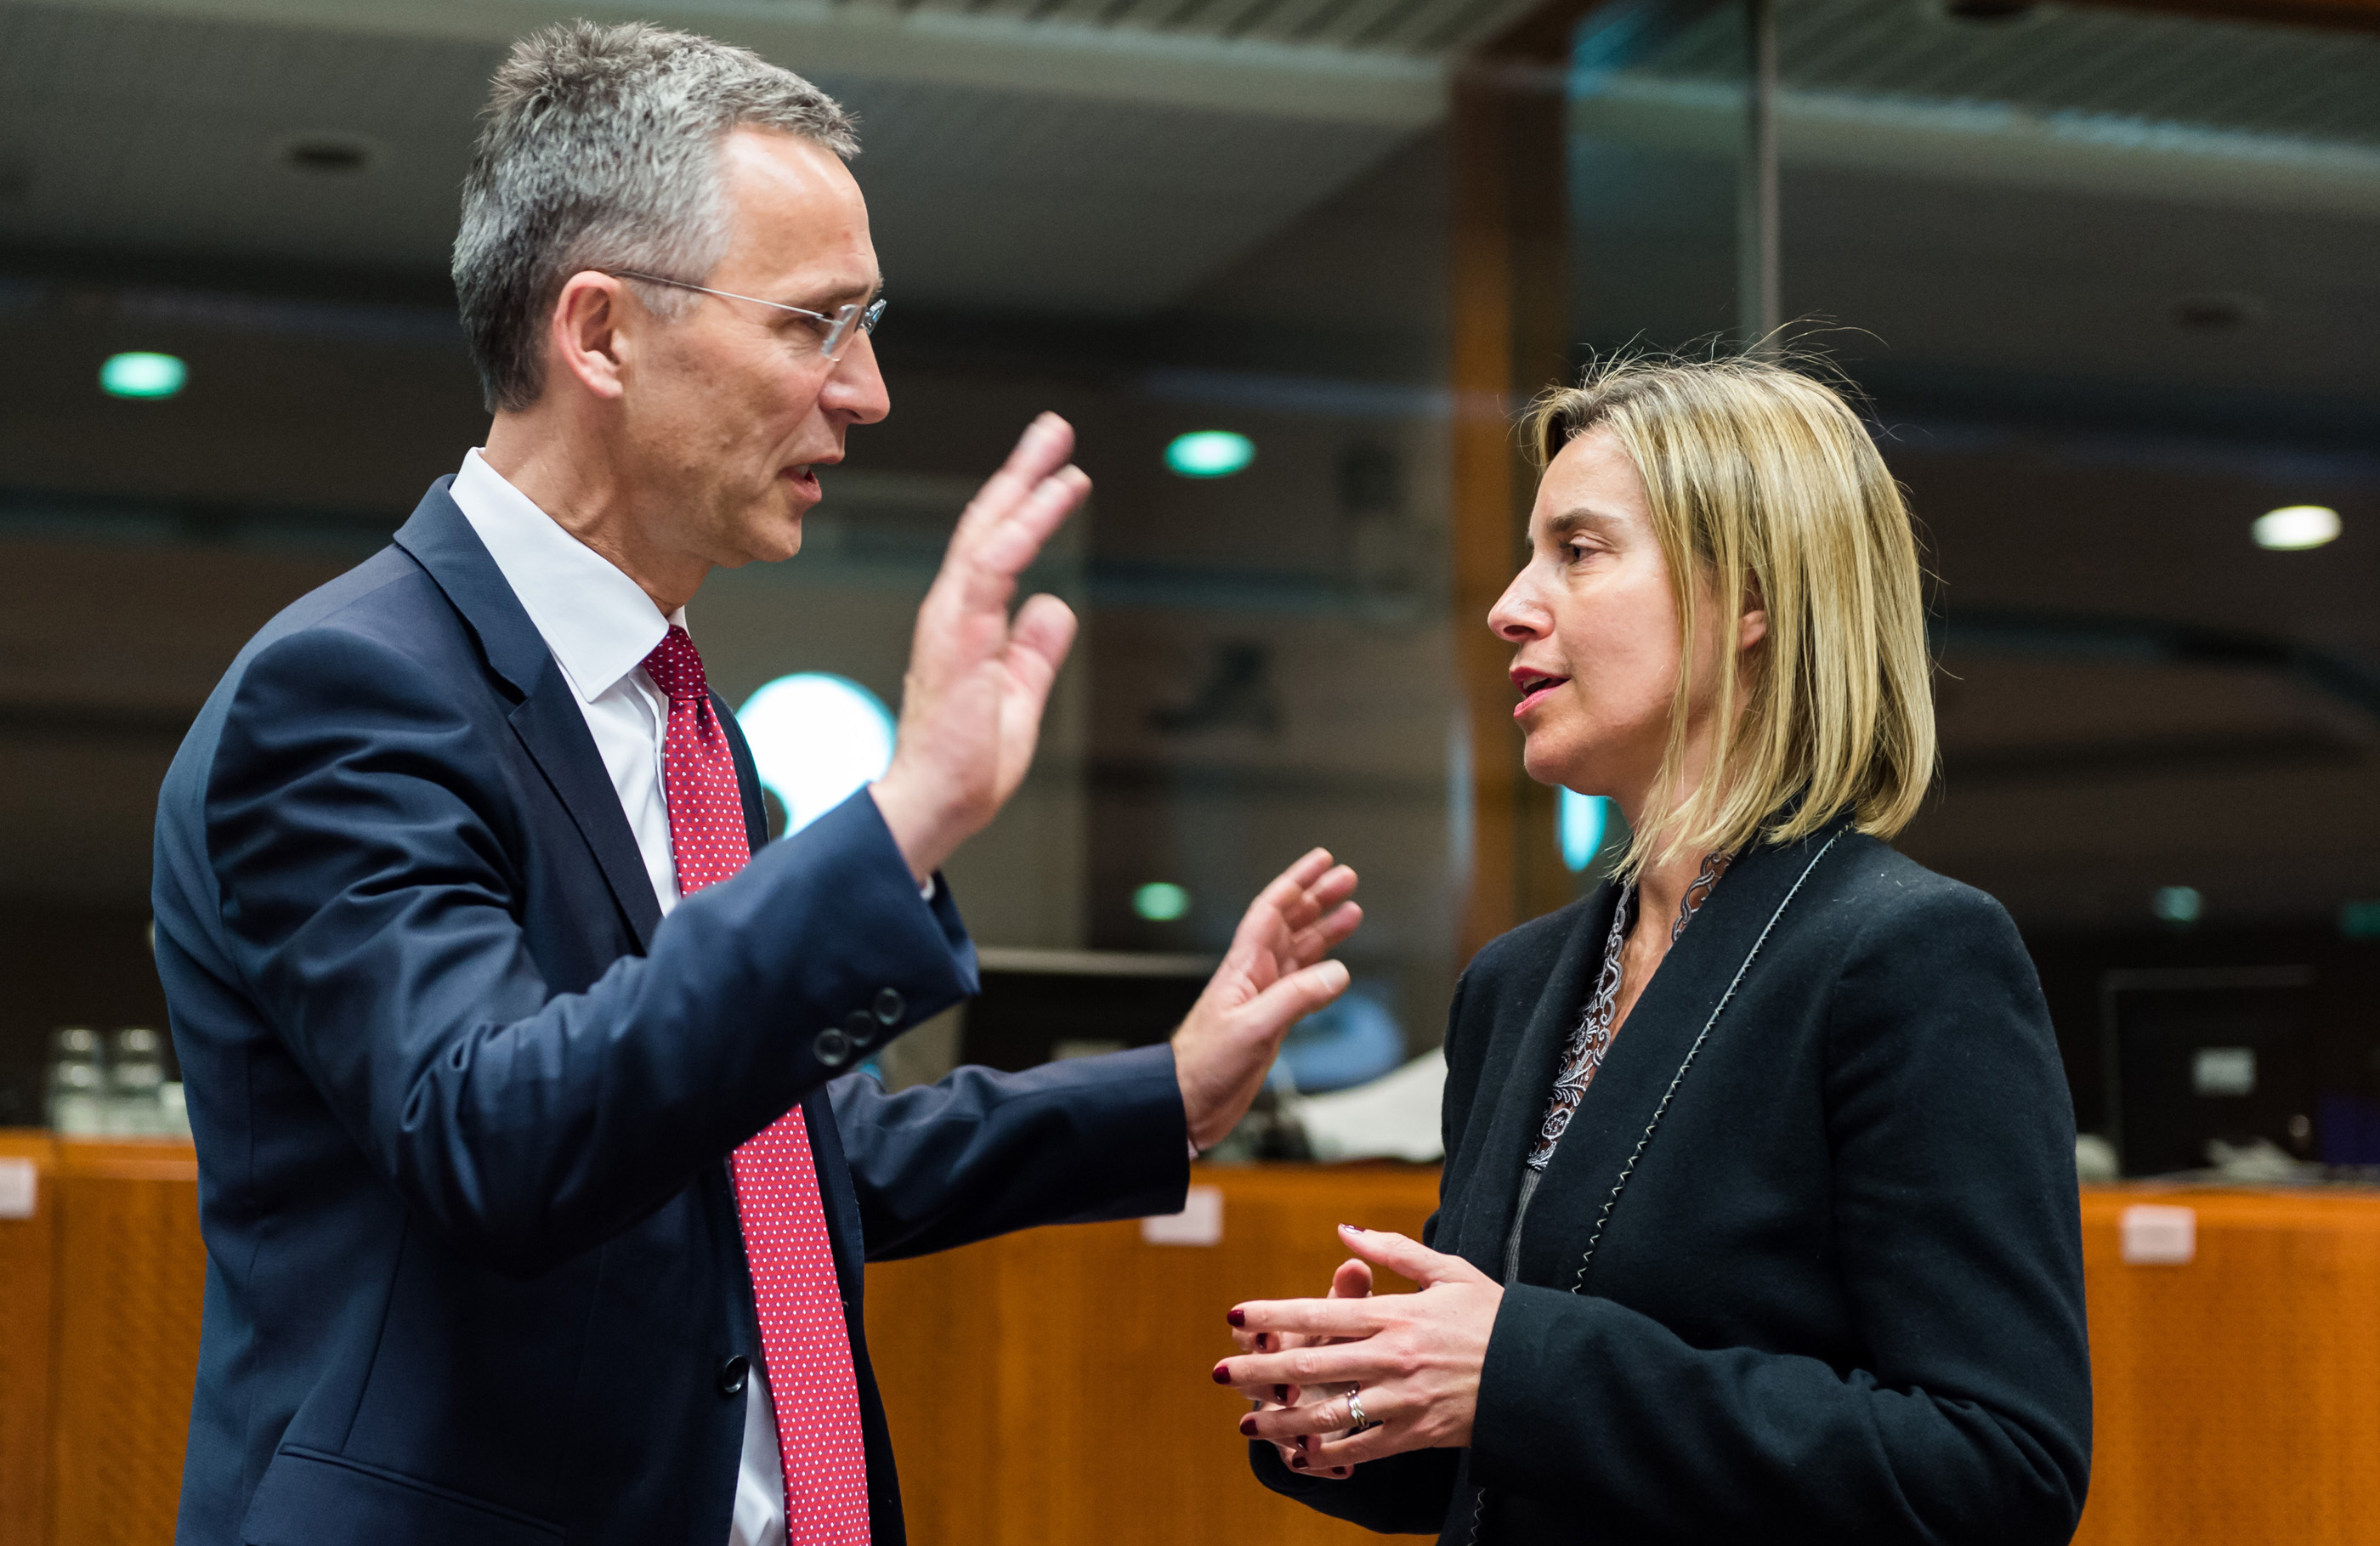 NATO chief calls for cooperation with EU, in three simple steps